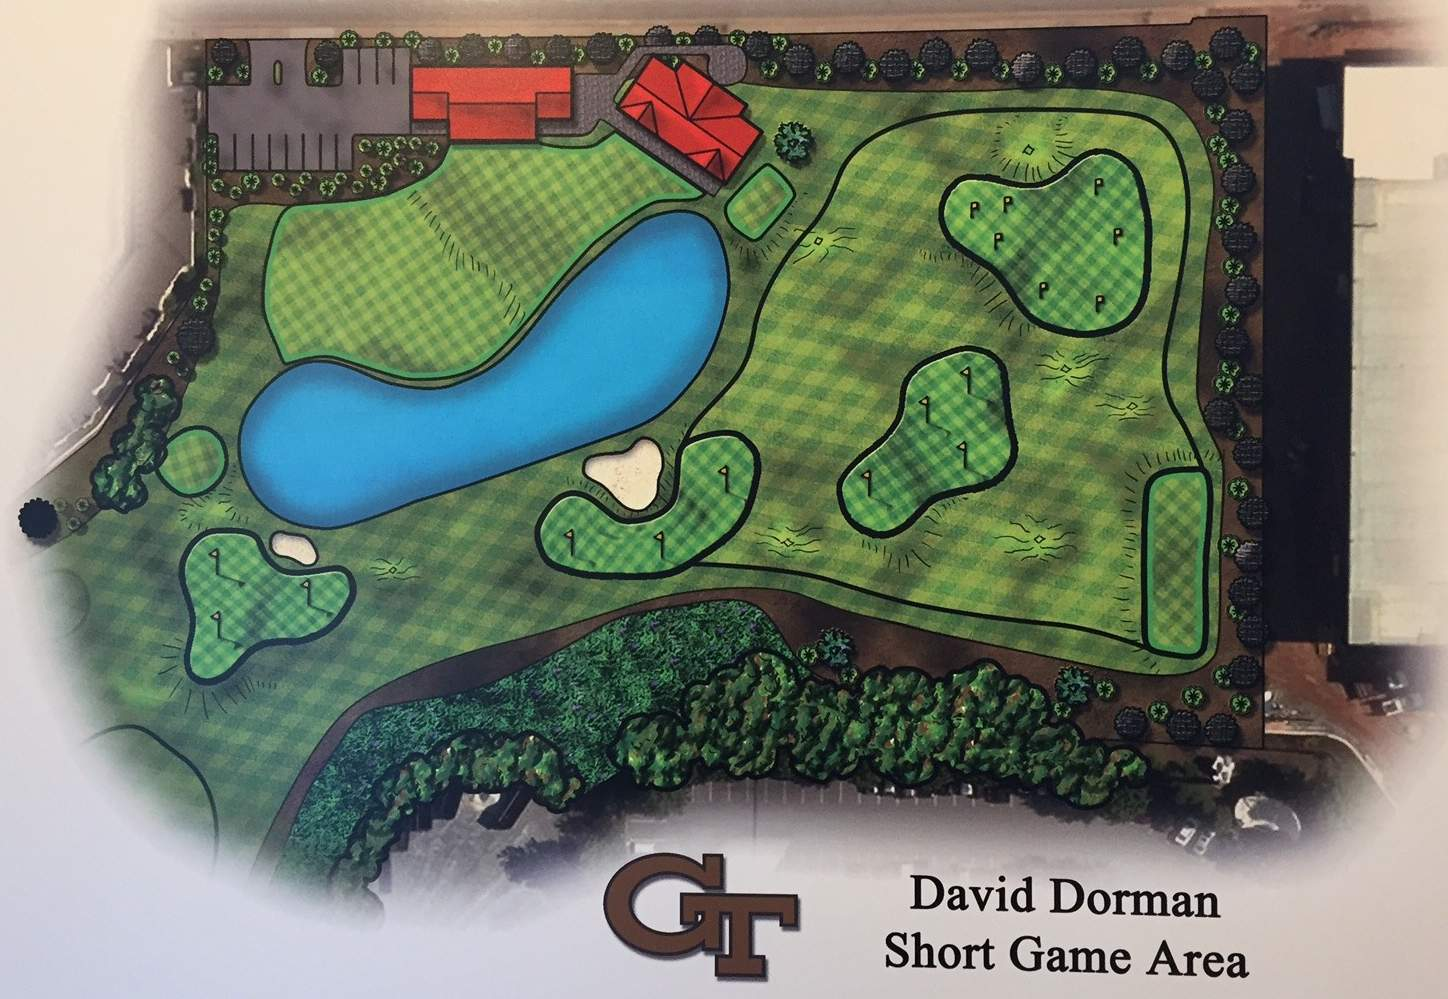 Rendering of the Dave Dorman Short Game Area at the Noonan Golf Facility